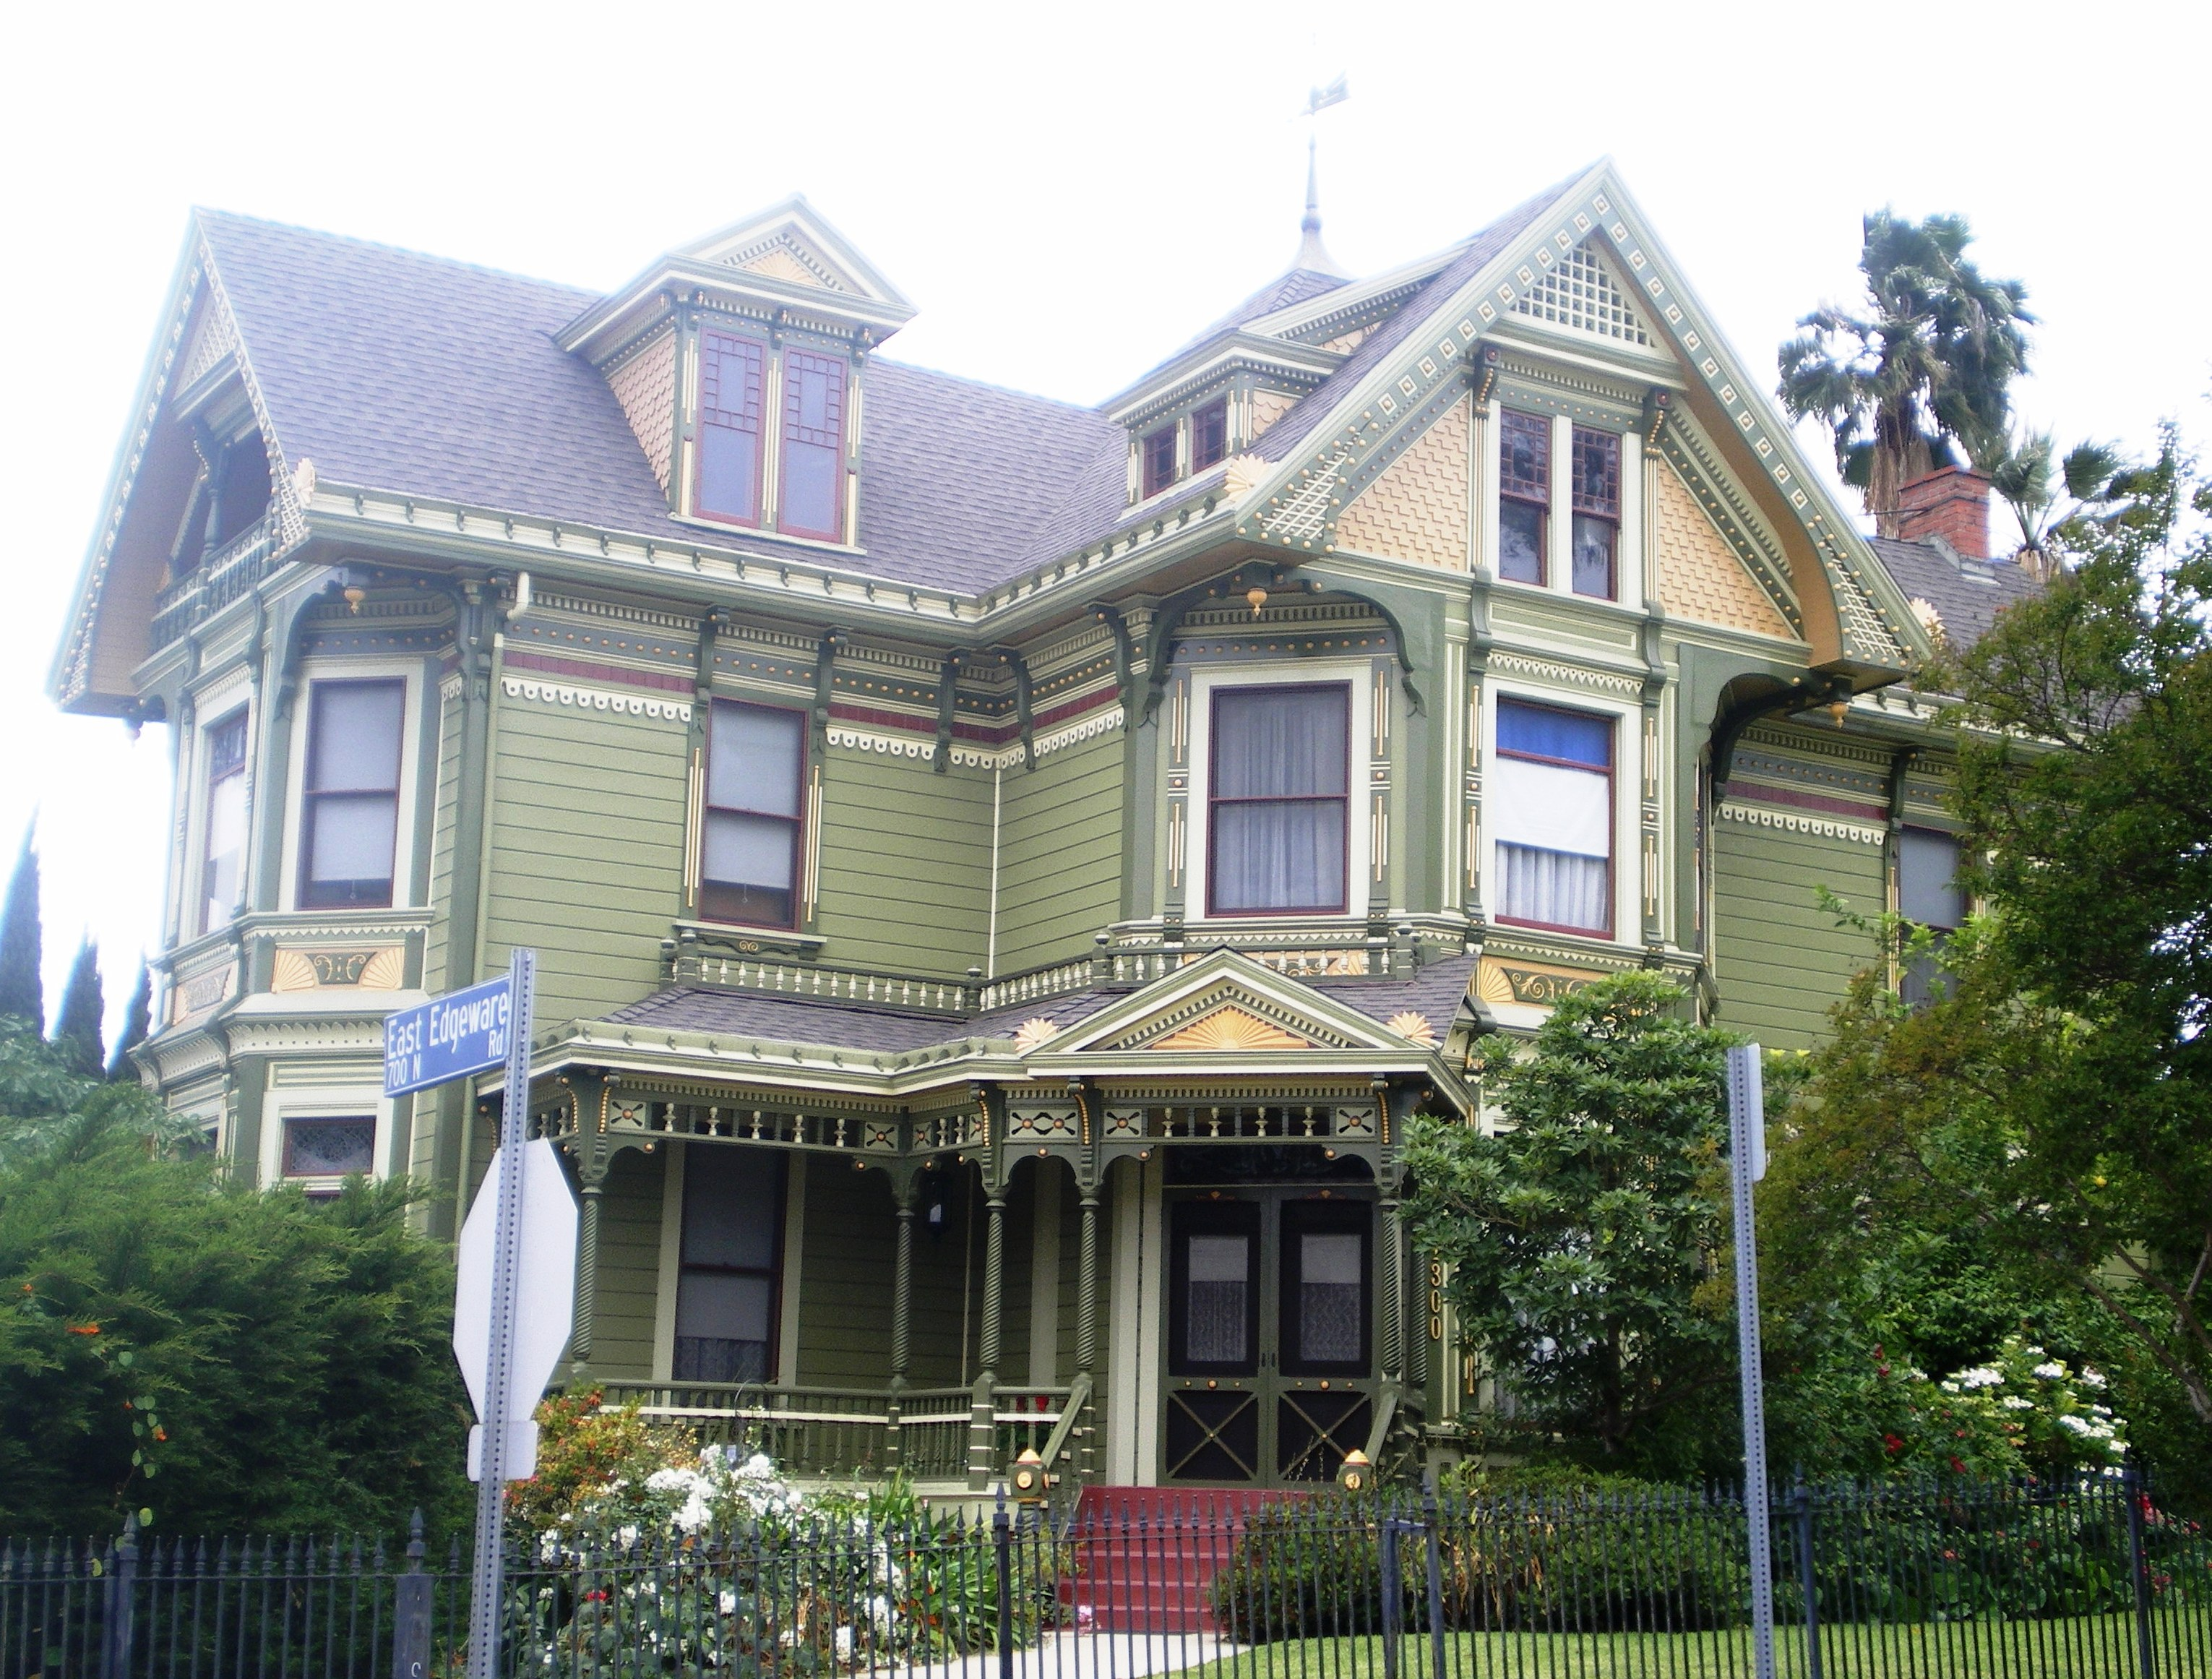 File:House At 1300 Carroll Ave., Los Angeles, California